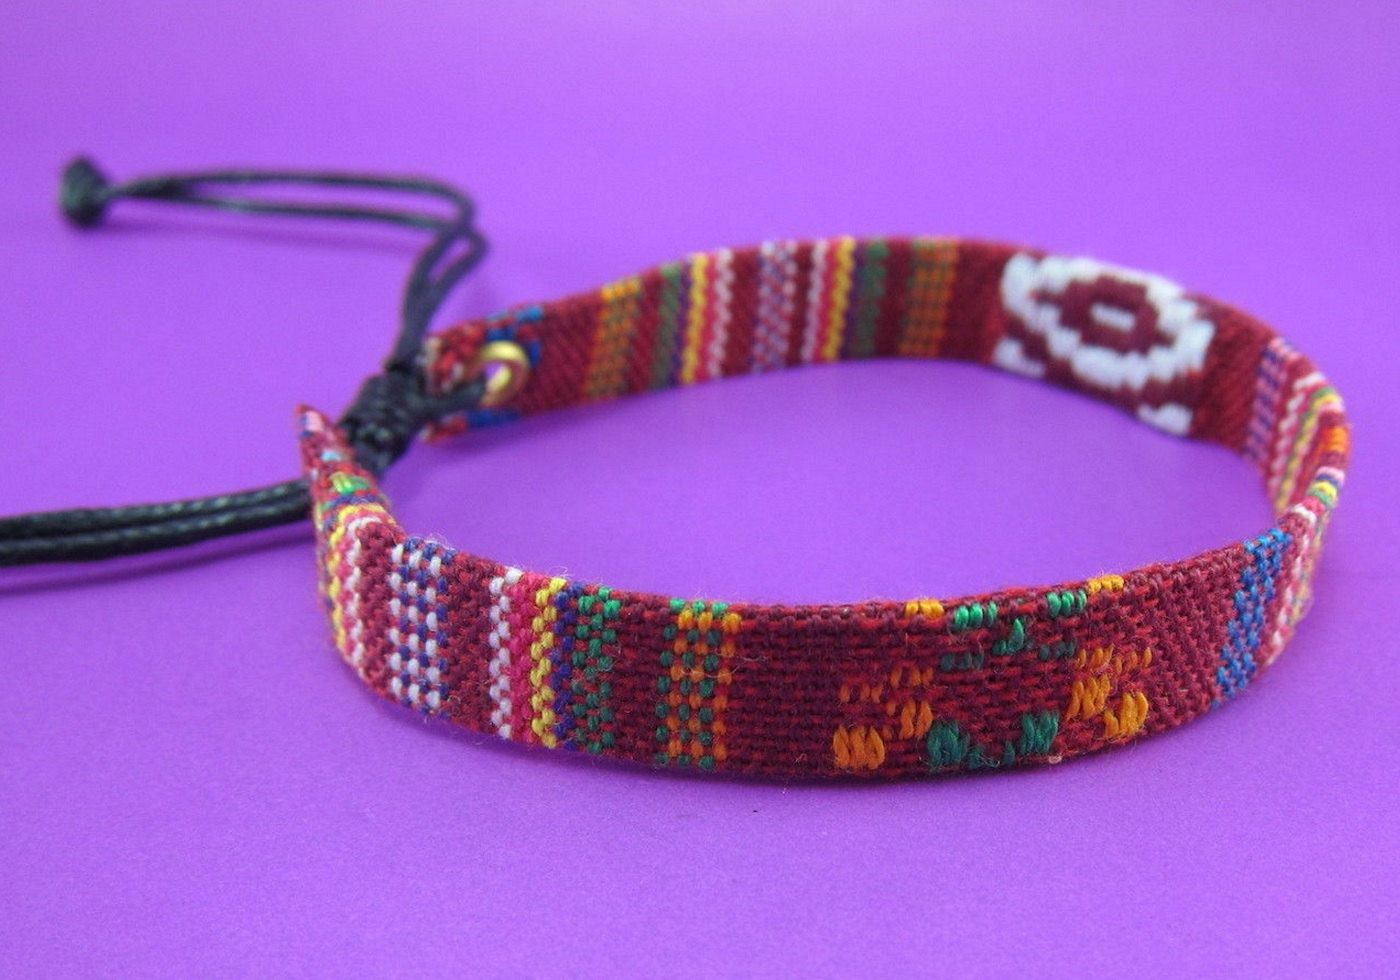 Variegated Hemp Handmade Friendship Bracelet Anklet Wristband Thai Hmong Woven Babric Brown by LuxuryFay on Etsy